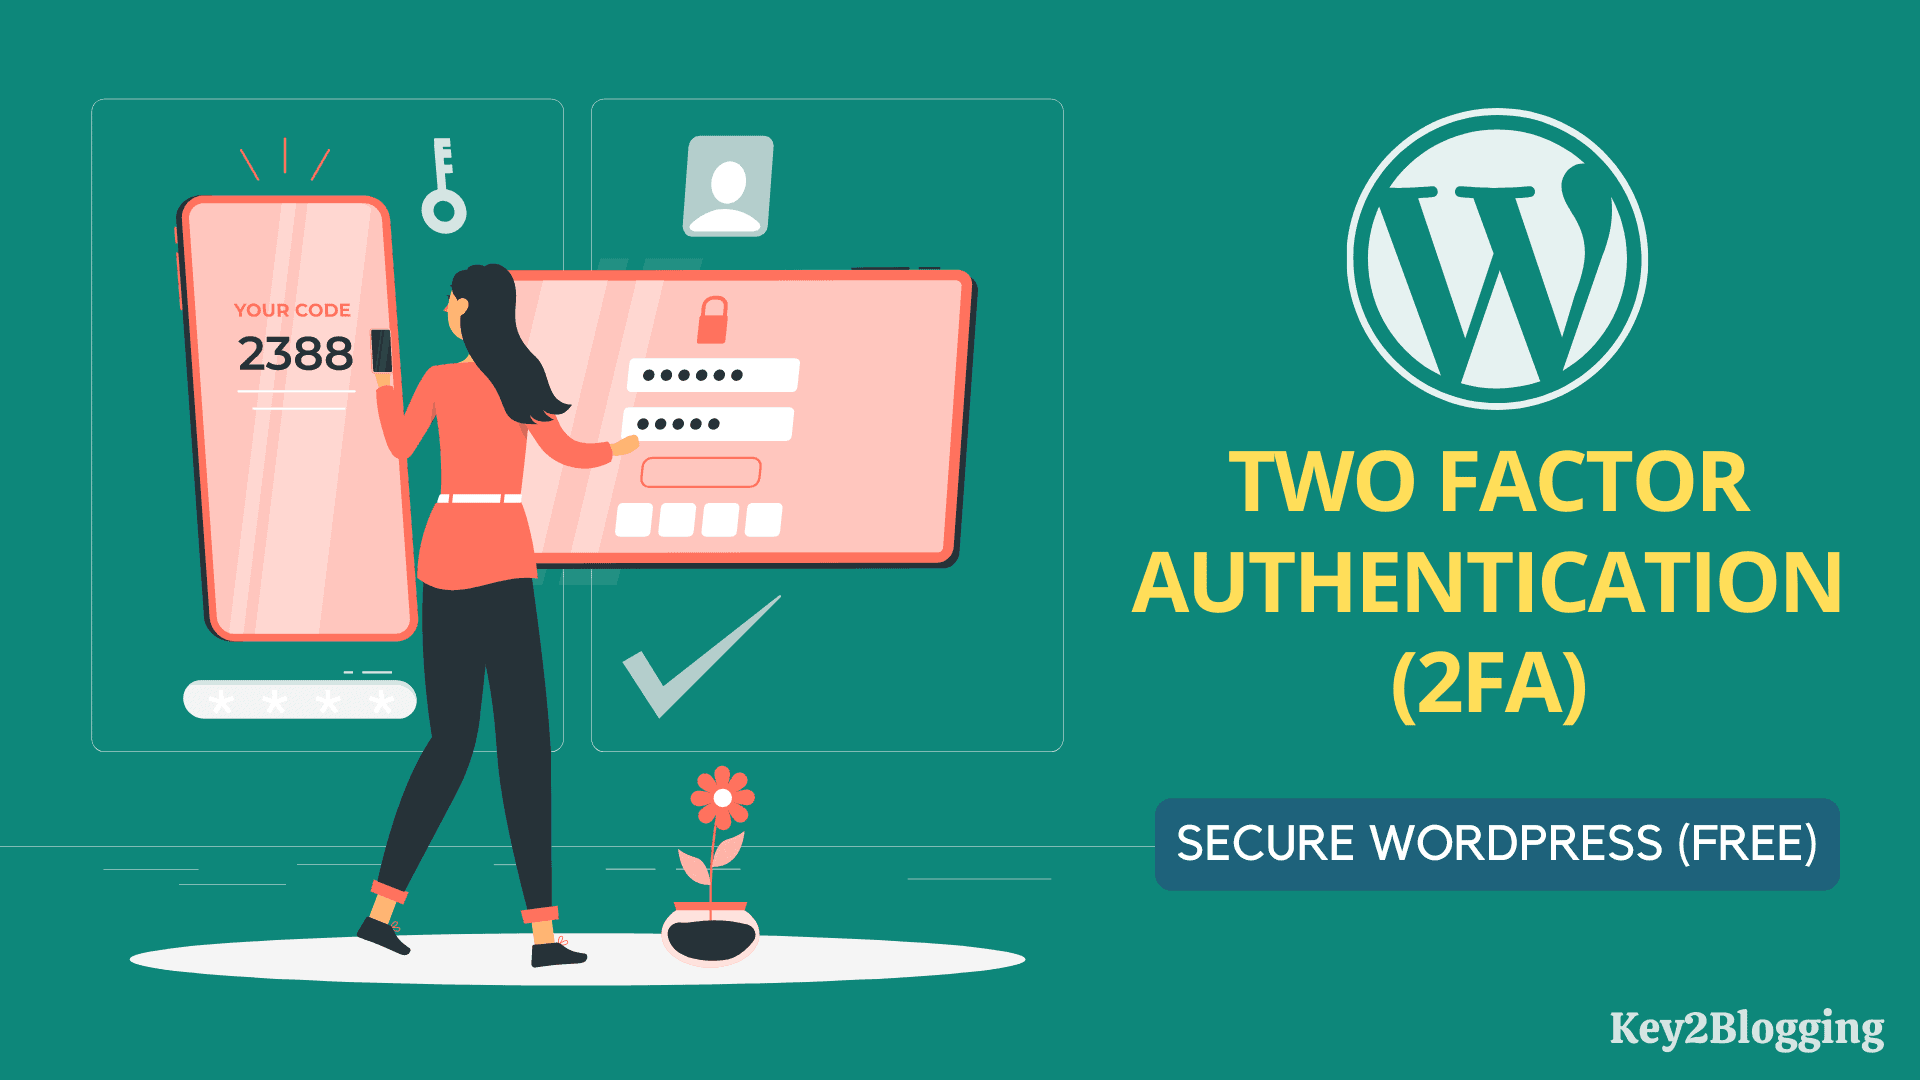 How to enable two factor authentication in WordPress for free